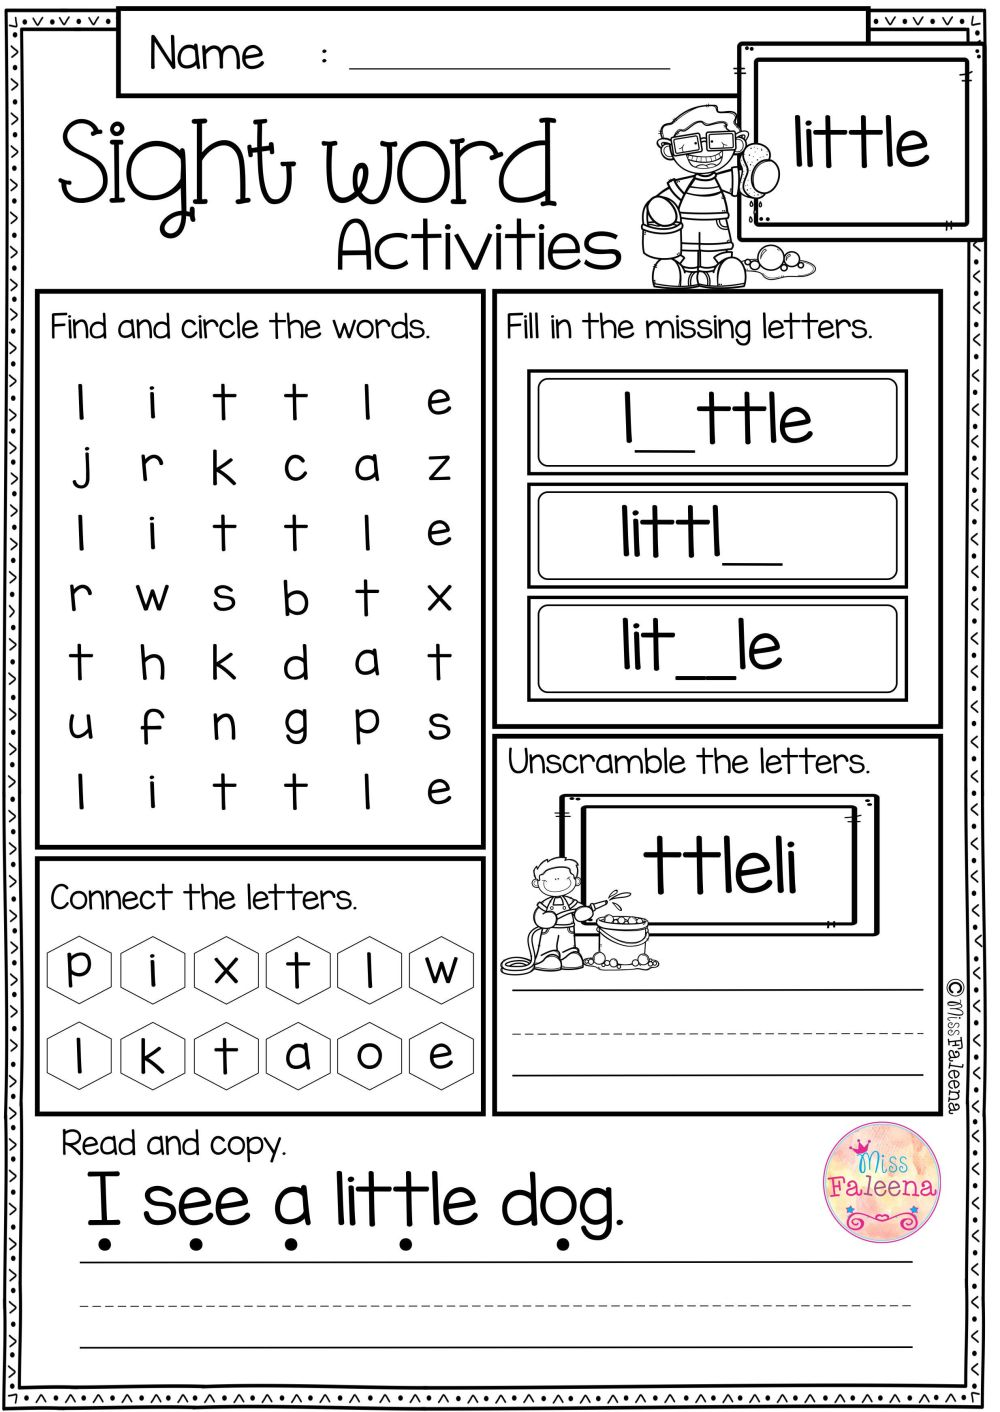 medium resolution of Sight Word Activities (pre-primer)   Rt   Sight Word Worksheets on Best  Worksheets Collection 2052